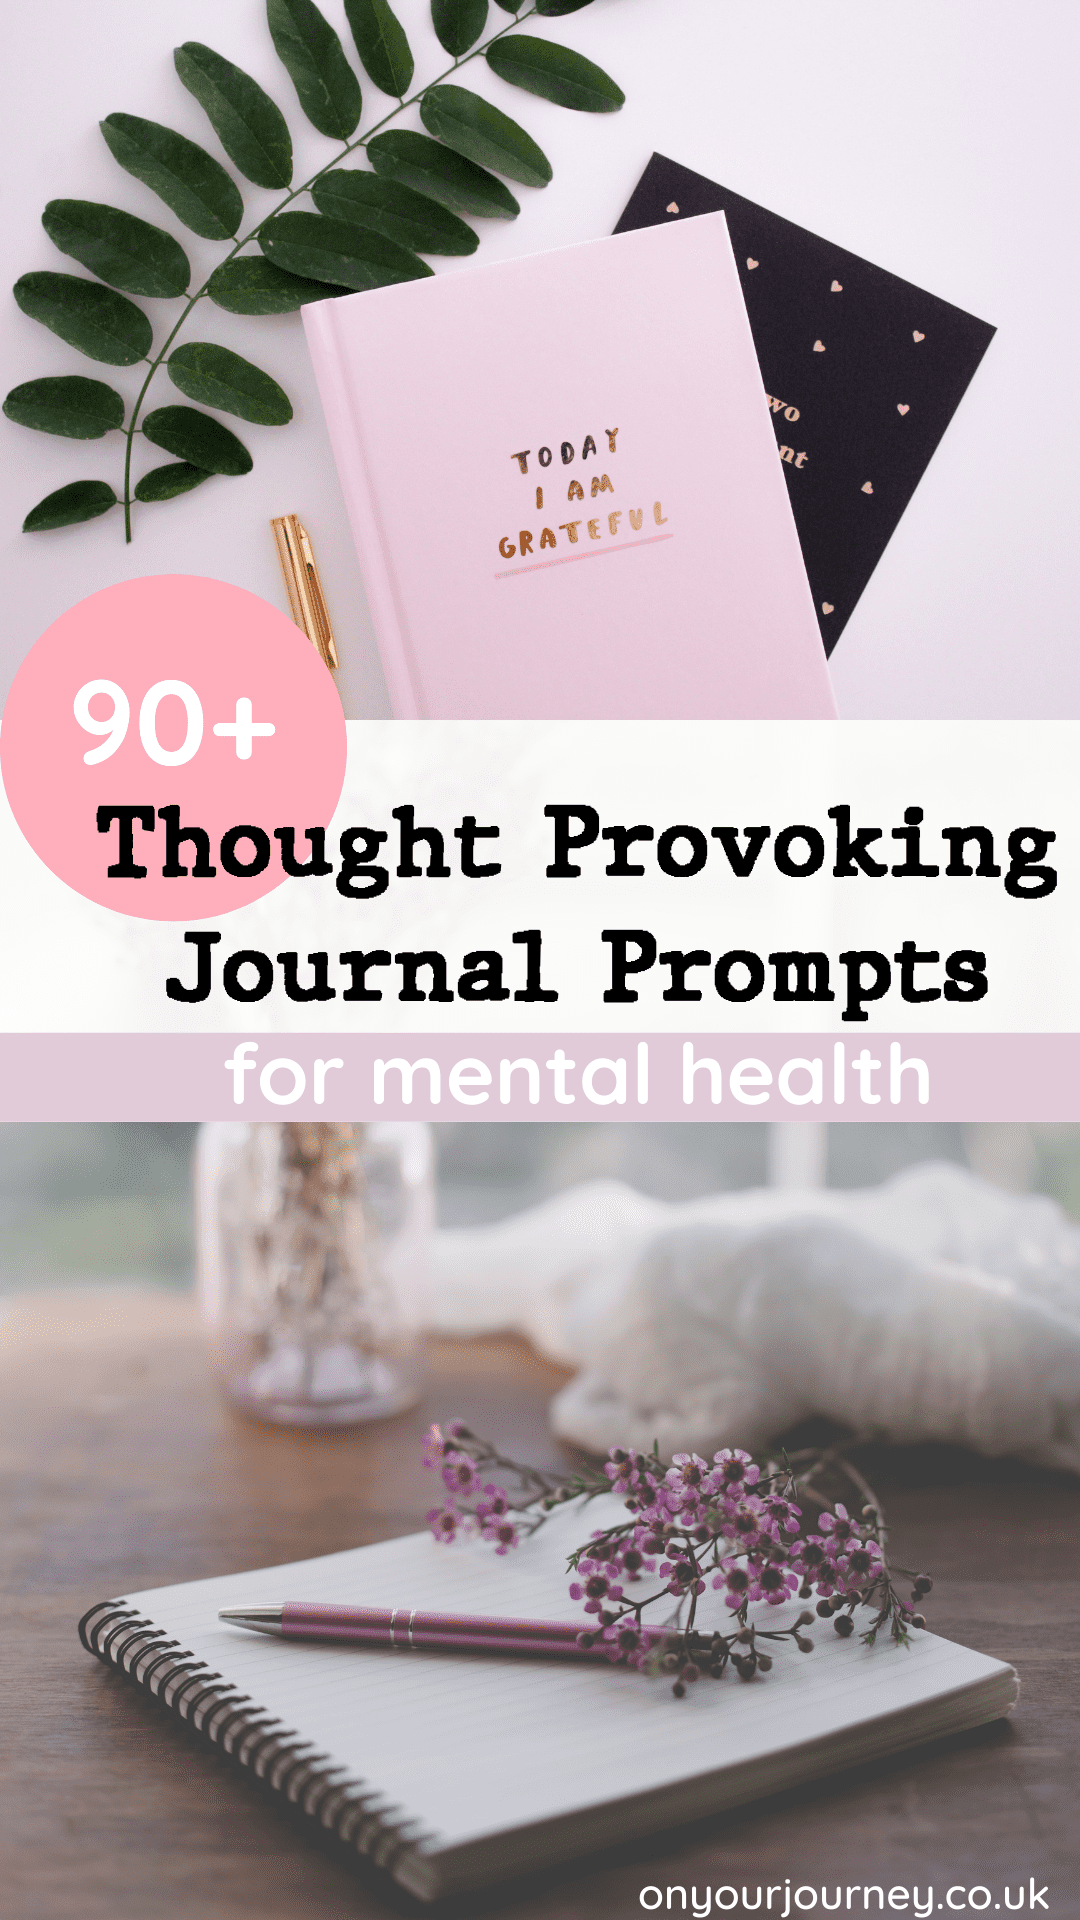 Over 90 thought provoking and creative journal prompts for mental health. Journalling is an amazing tool to process thoughts and feelings, and heal